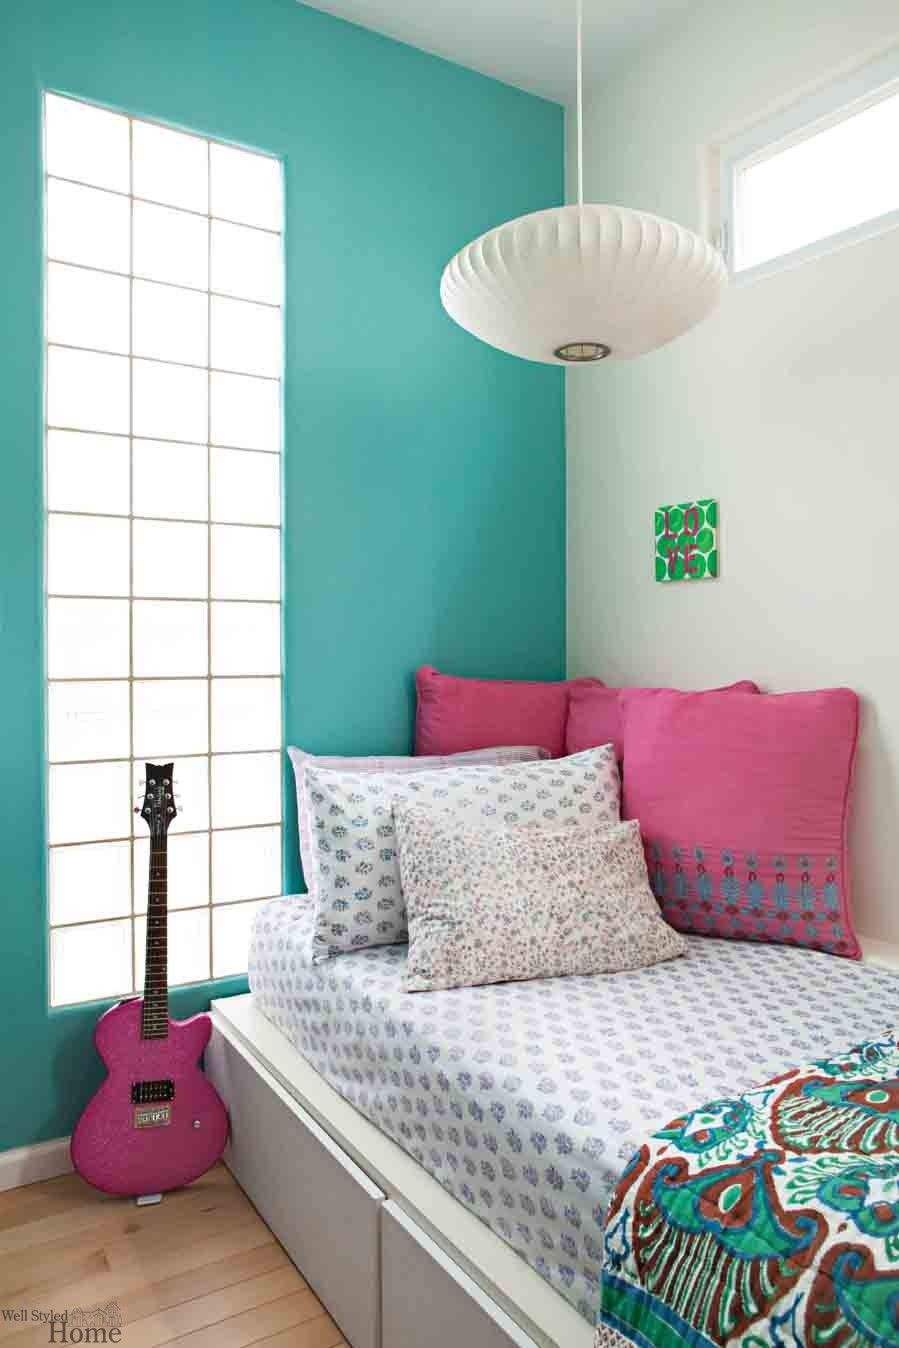 Bedroom Ideas For Teenage Girls Blue girly tips for a teen girls bedroom decor ideas | stuff for the